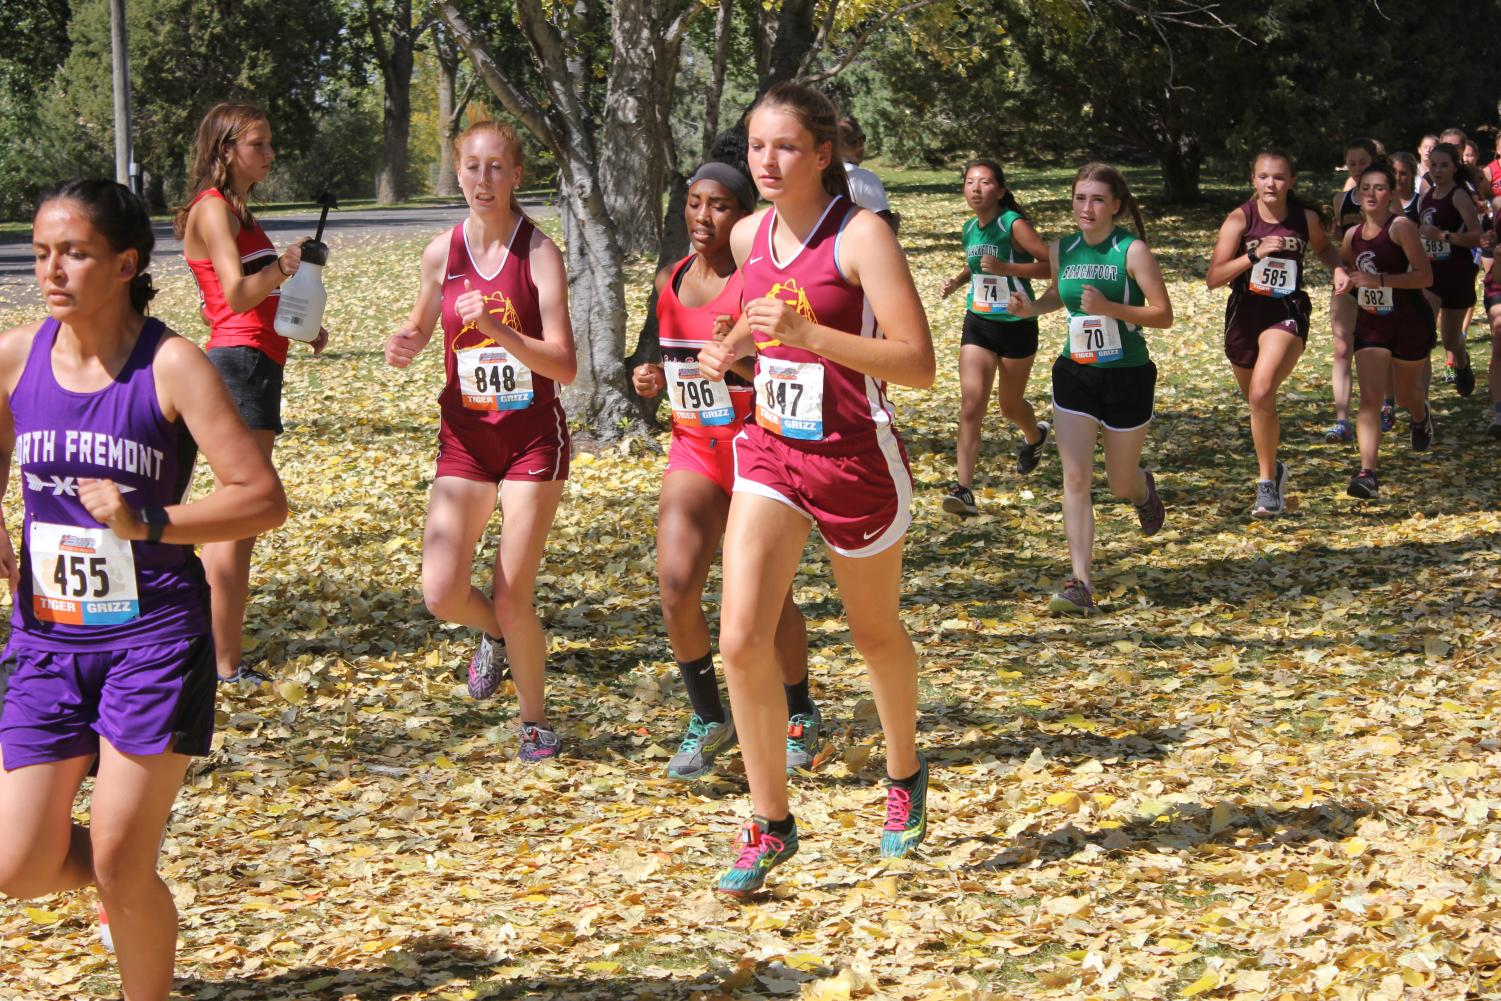 Caelyn Long and Lilly Jenkins hit their strides at the Tiger Griz Invite in Idaho Falls.